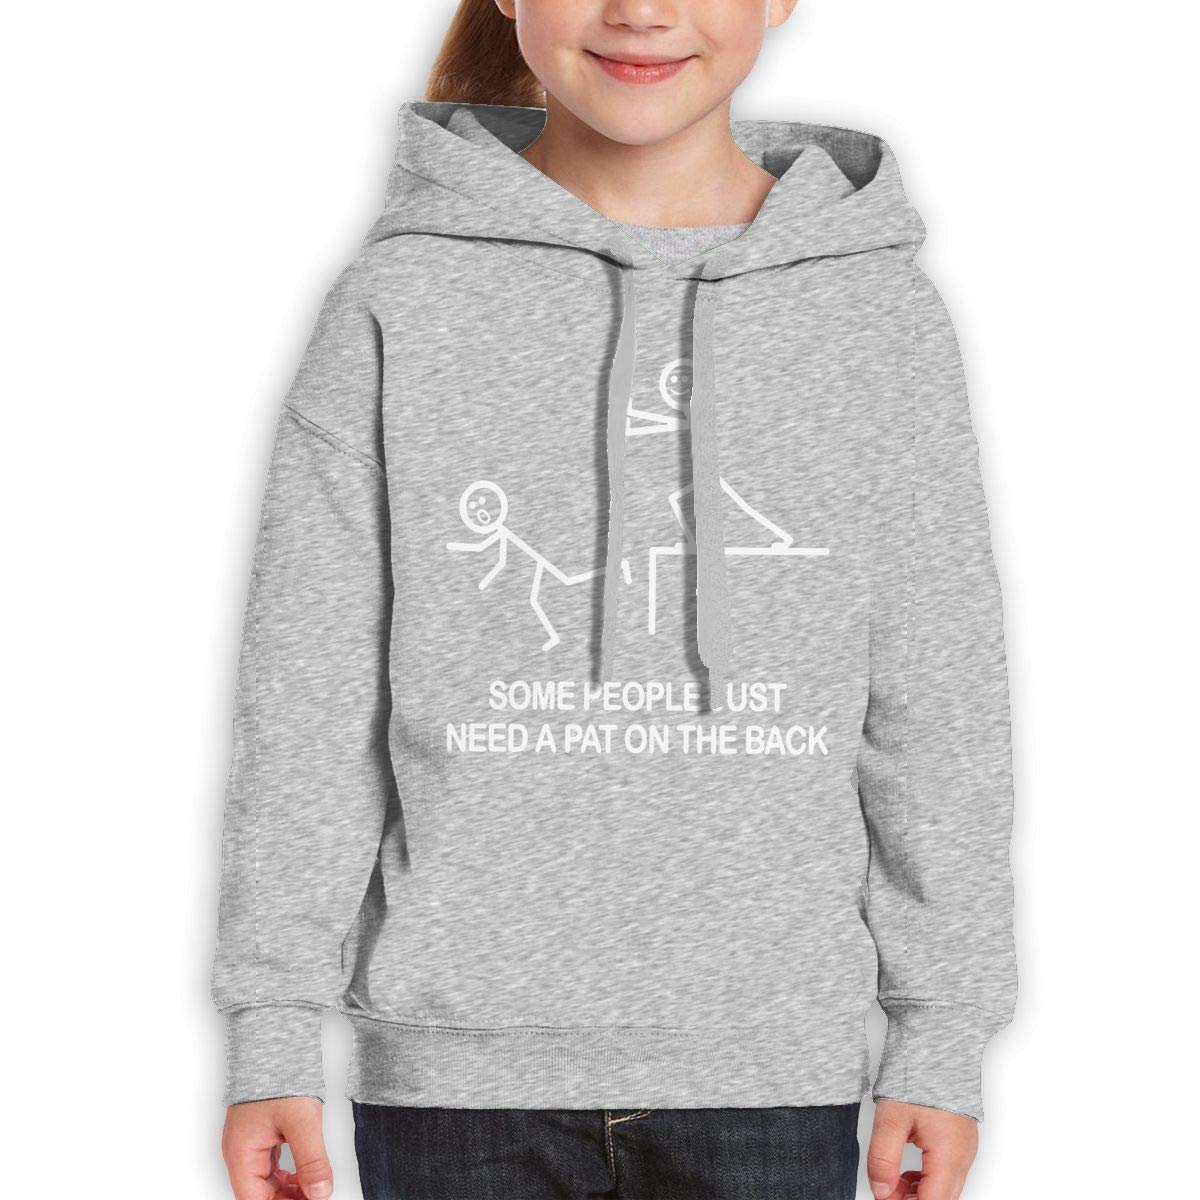 Boys Girls Some People Just Need A Pat On The Back Teen Youth Fleeces Black